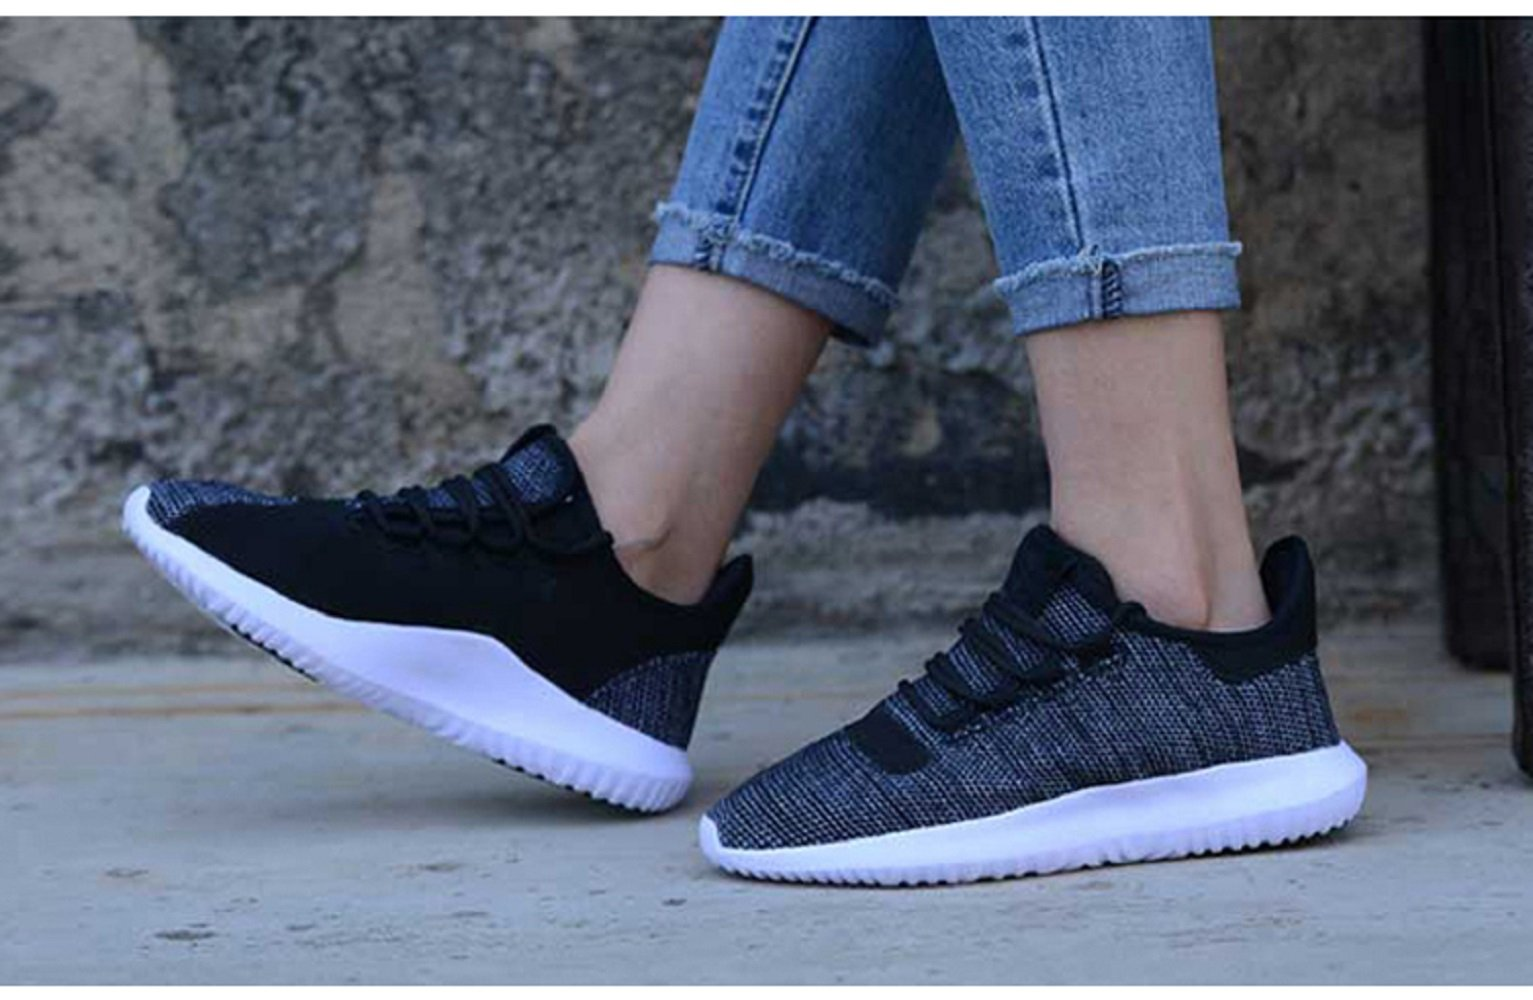 GAOAG Sneakers Running Cushioning Lightweight Breathable Casual Shoes Unisex by GAOAG (Image #3)